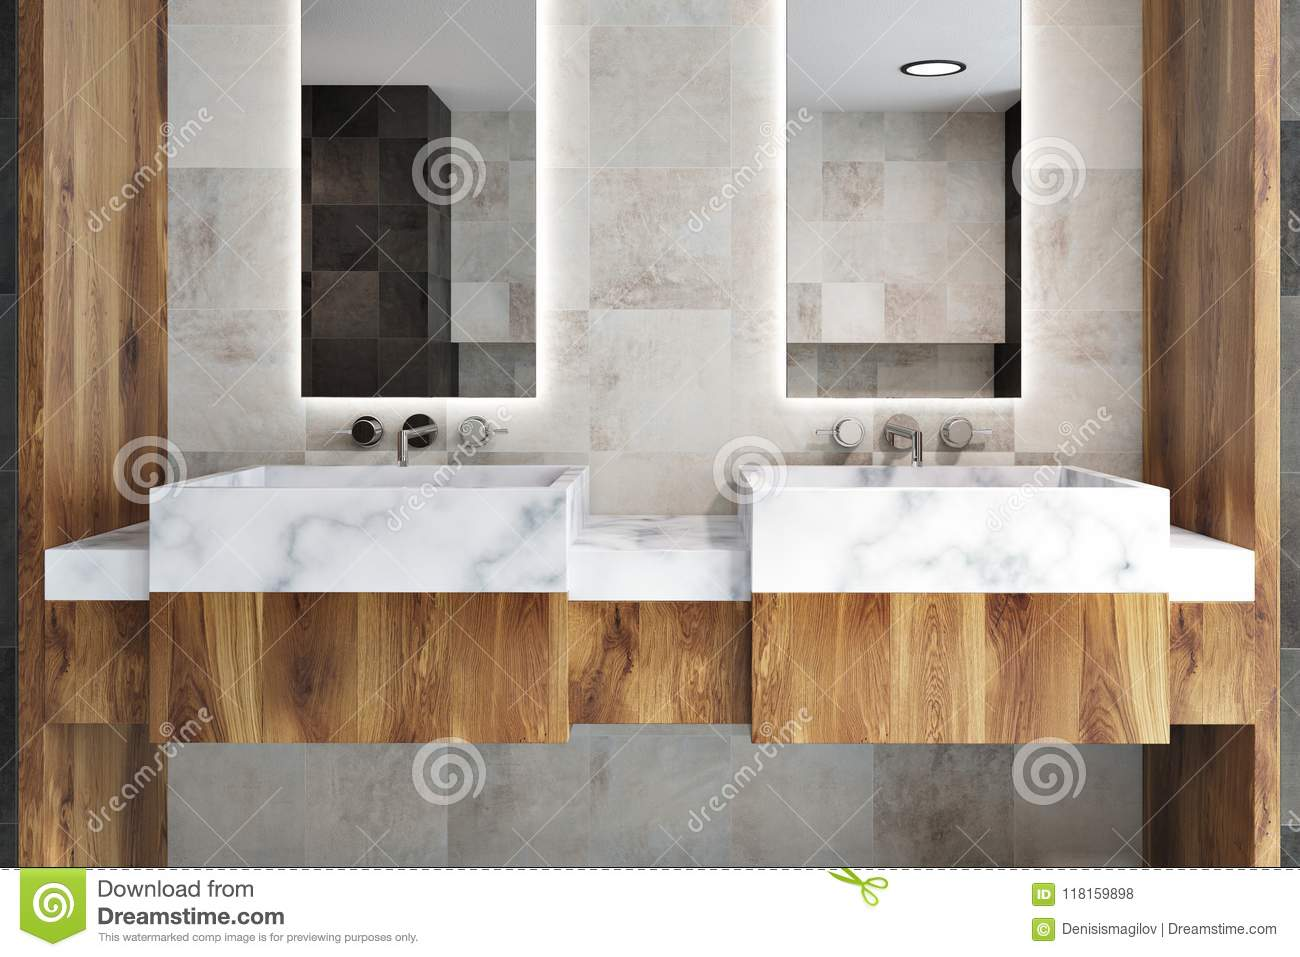 Double Bathroom Sink Wooden Countertop Close Up Stock Illustration ...